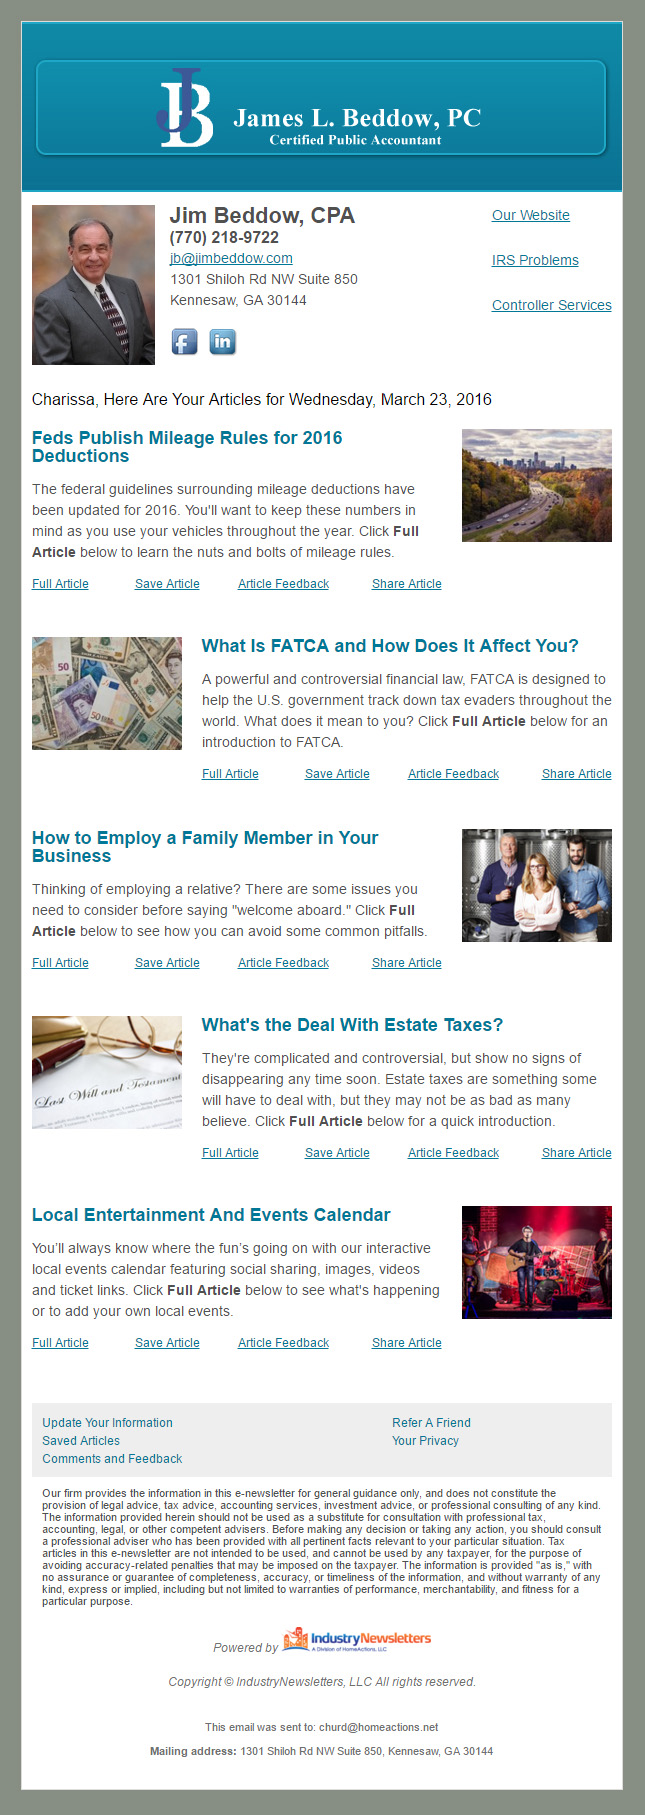 View a Sample CPA Email Newsletter – IndustryNewsletters